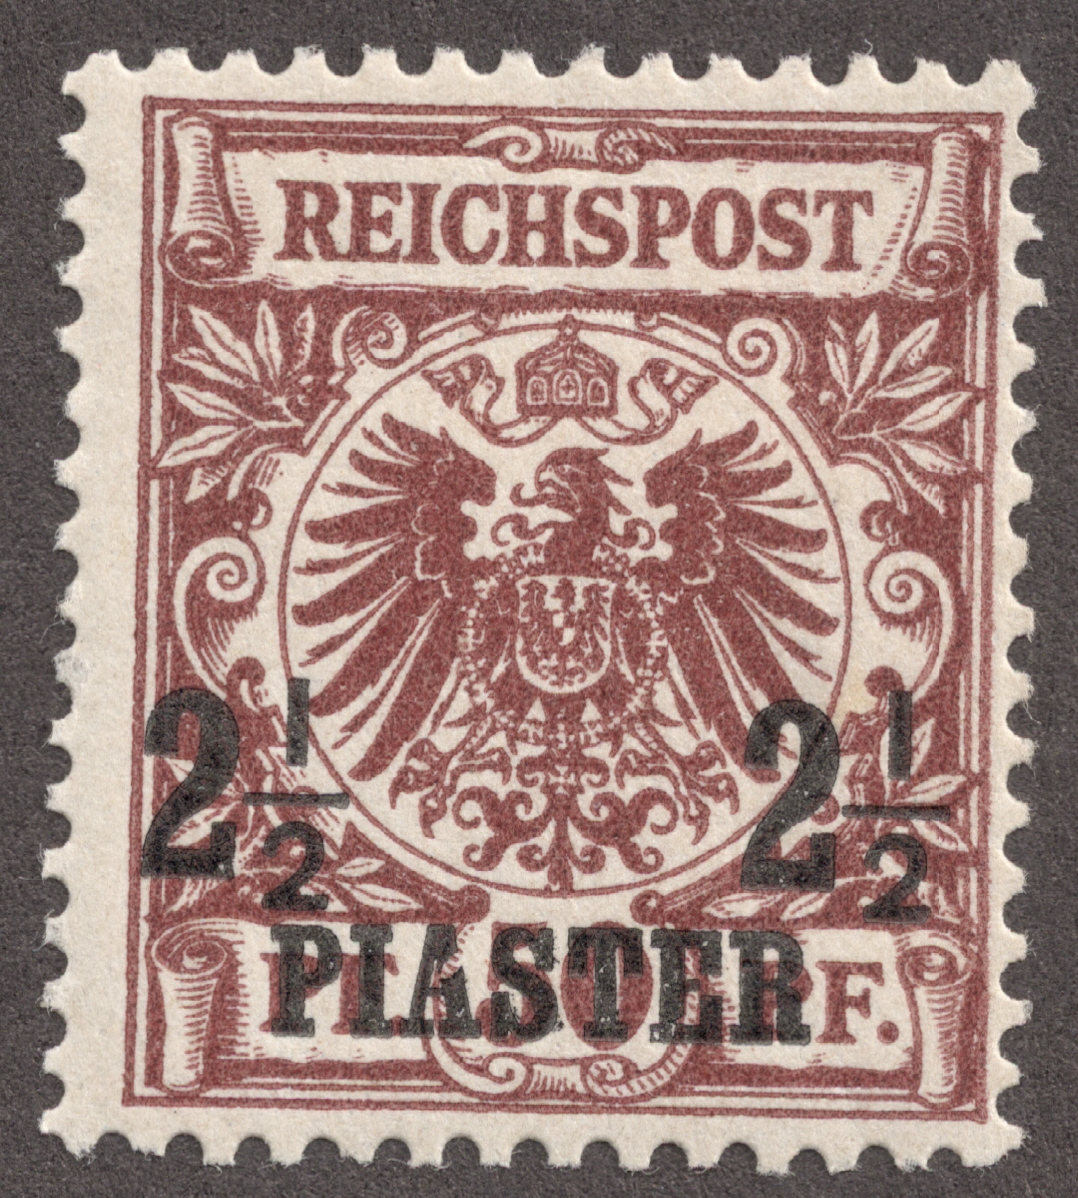 Big Blue 1840 1940 Germany Semi Postal Air Post Officials Offices Abroad